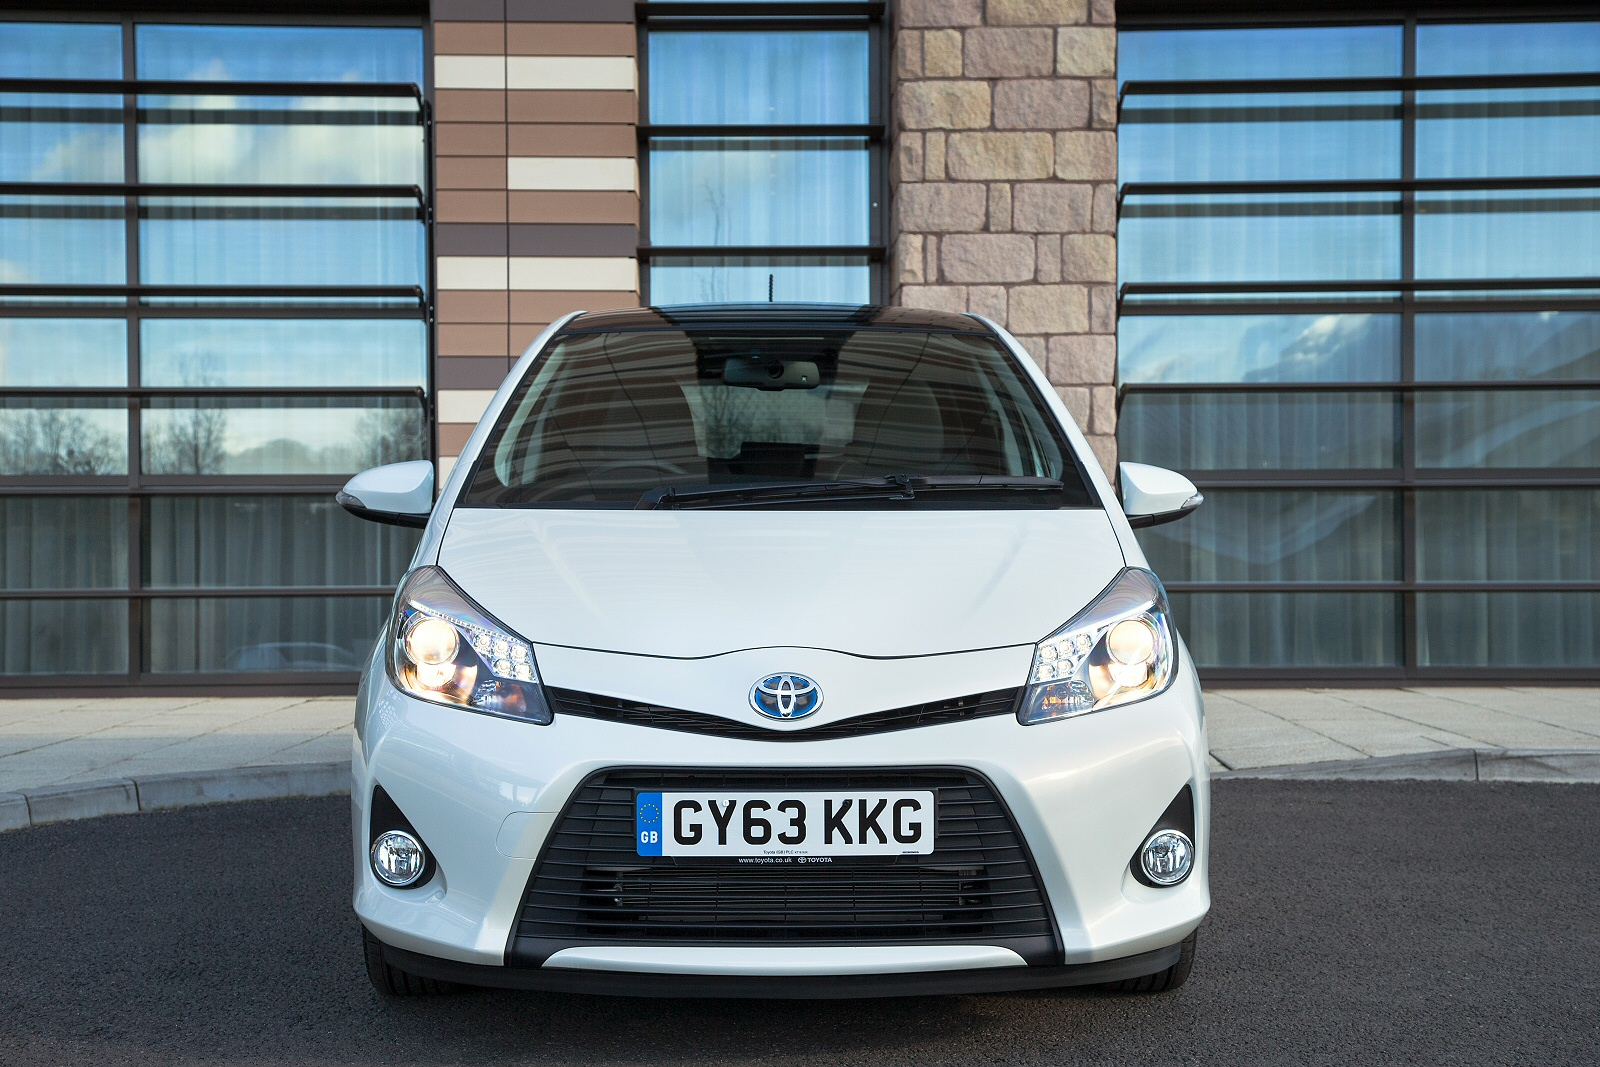 new toyota yaris 1 5 hybrid blue bi tone 5dr cvt hybrid hatchback for sale bristol street. Black Bedroom Furniture Sets. Home Design Ideas